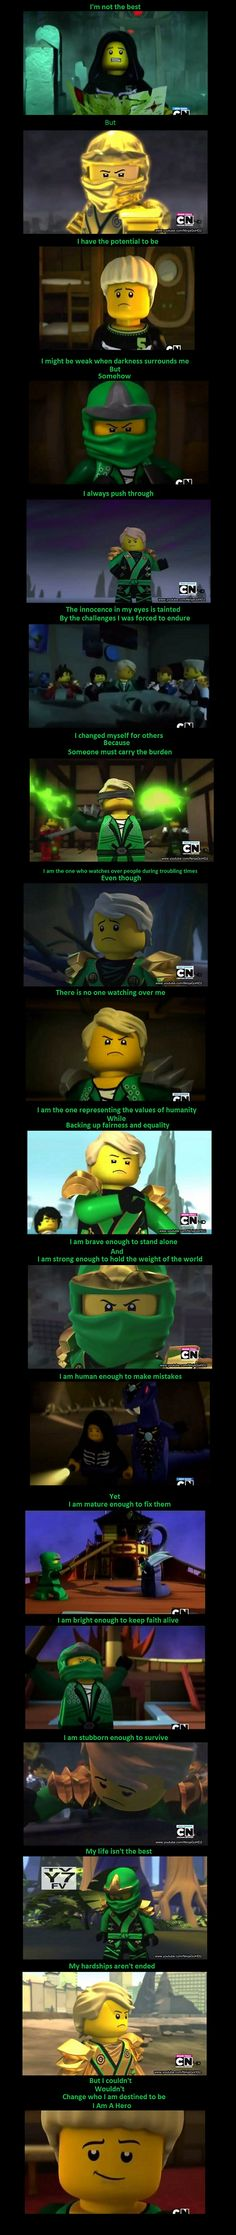 Sweet little Lloyd Montgomery Garmadon, Green Ninja, Ultimate Spinjitzu Master. (That is his official title.)